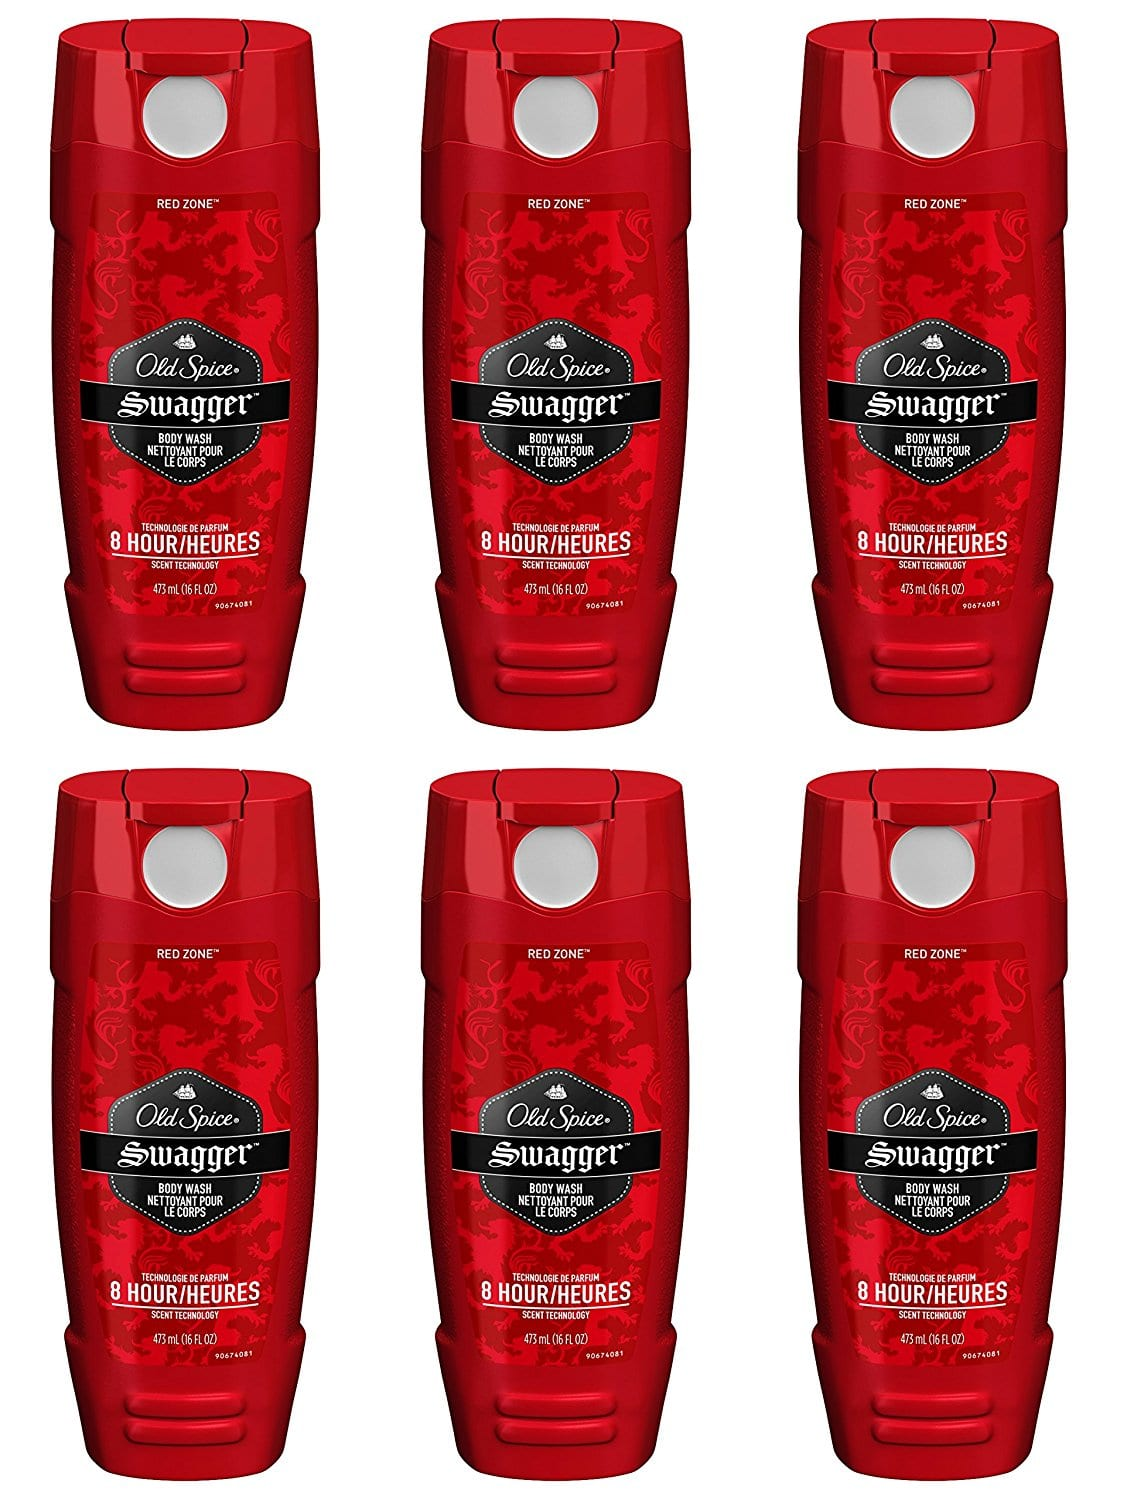 Old Spice Red Zone Men's Body Wash, Swagger, 16 Fluid Ounce (Pack of 6) $12